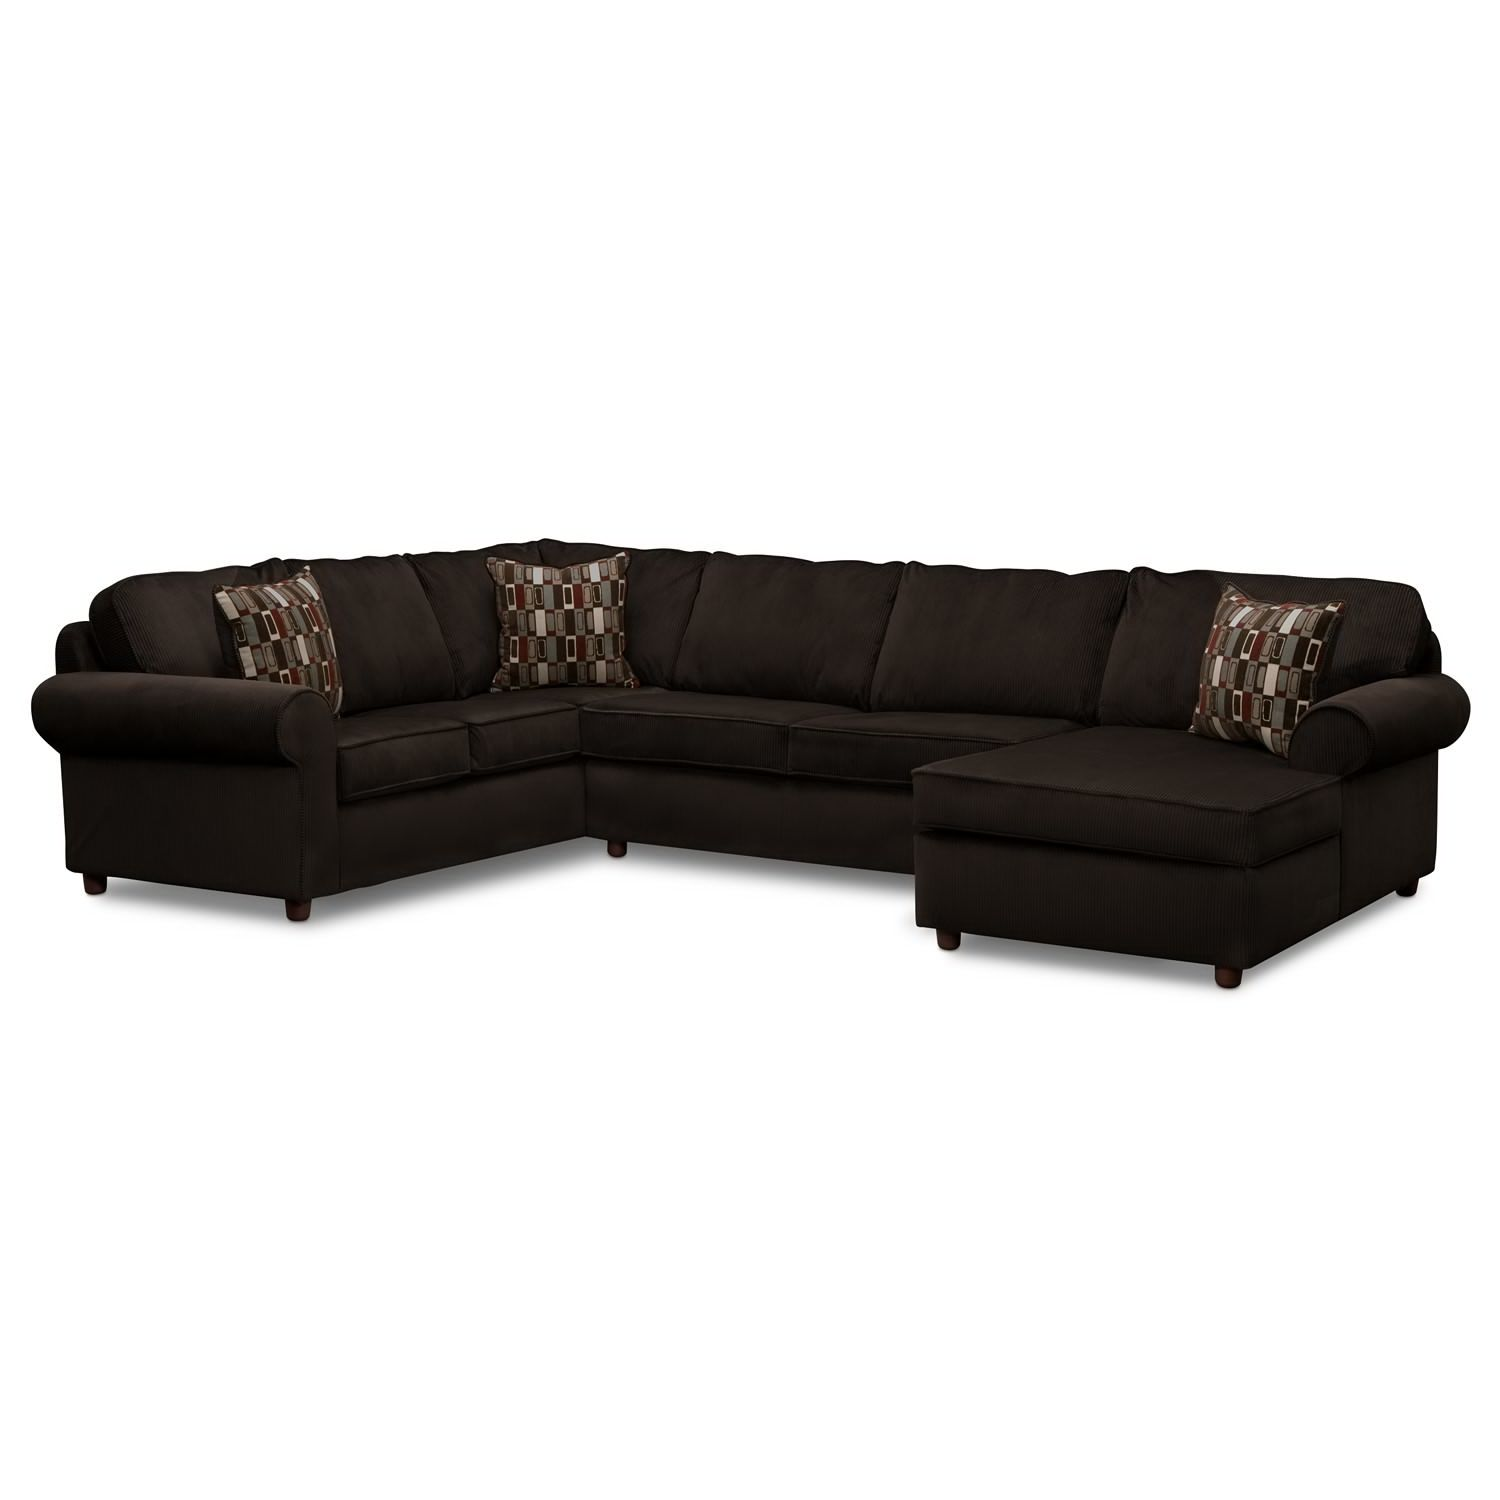 wonderful value city sectional sofa gallery-Luxury Value City Sectional sofa Décor